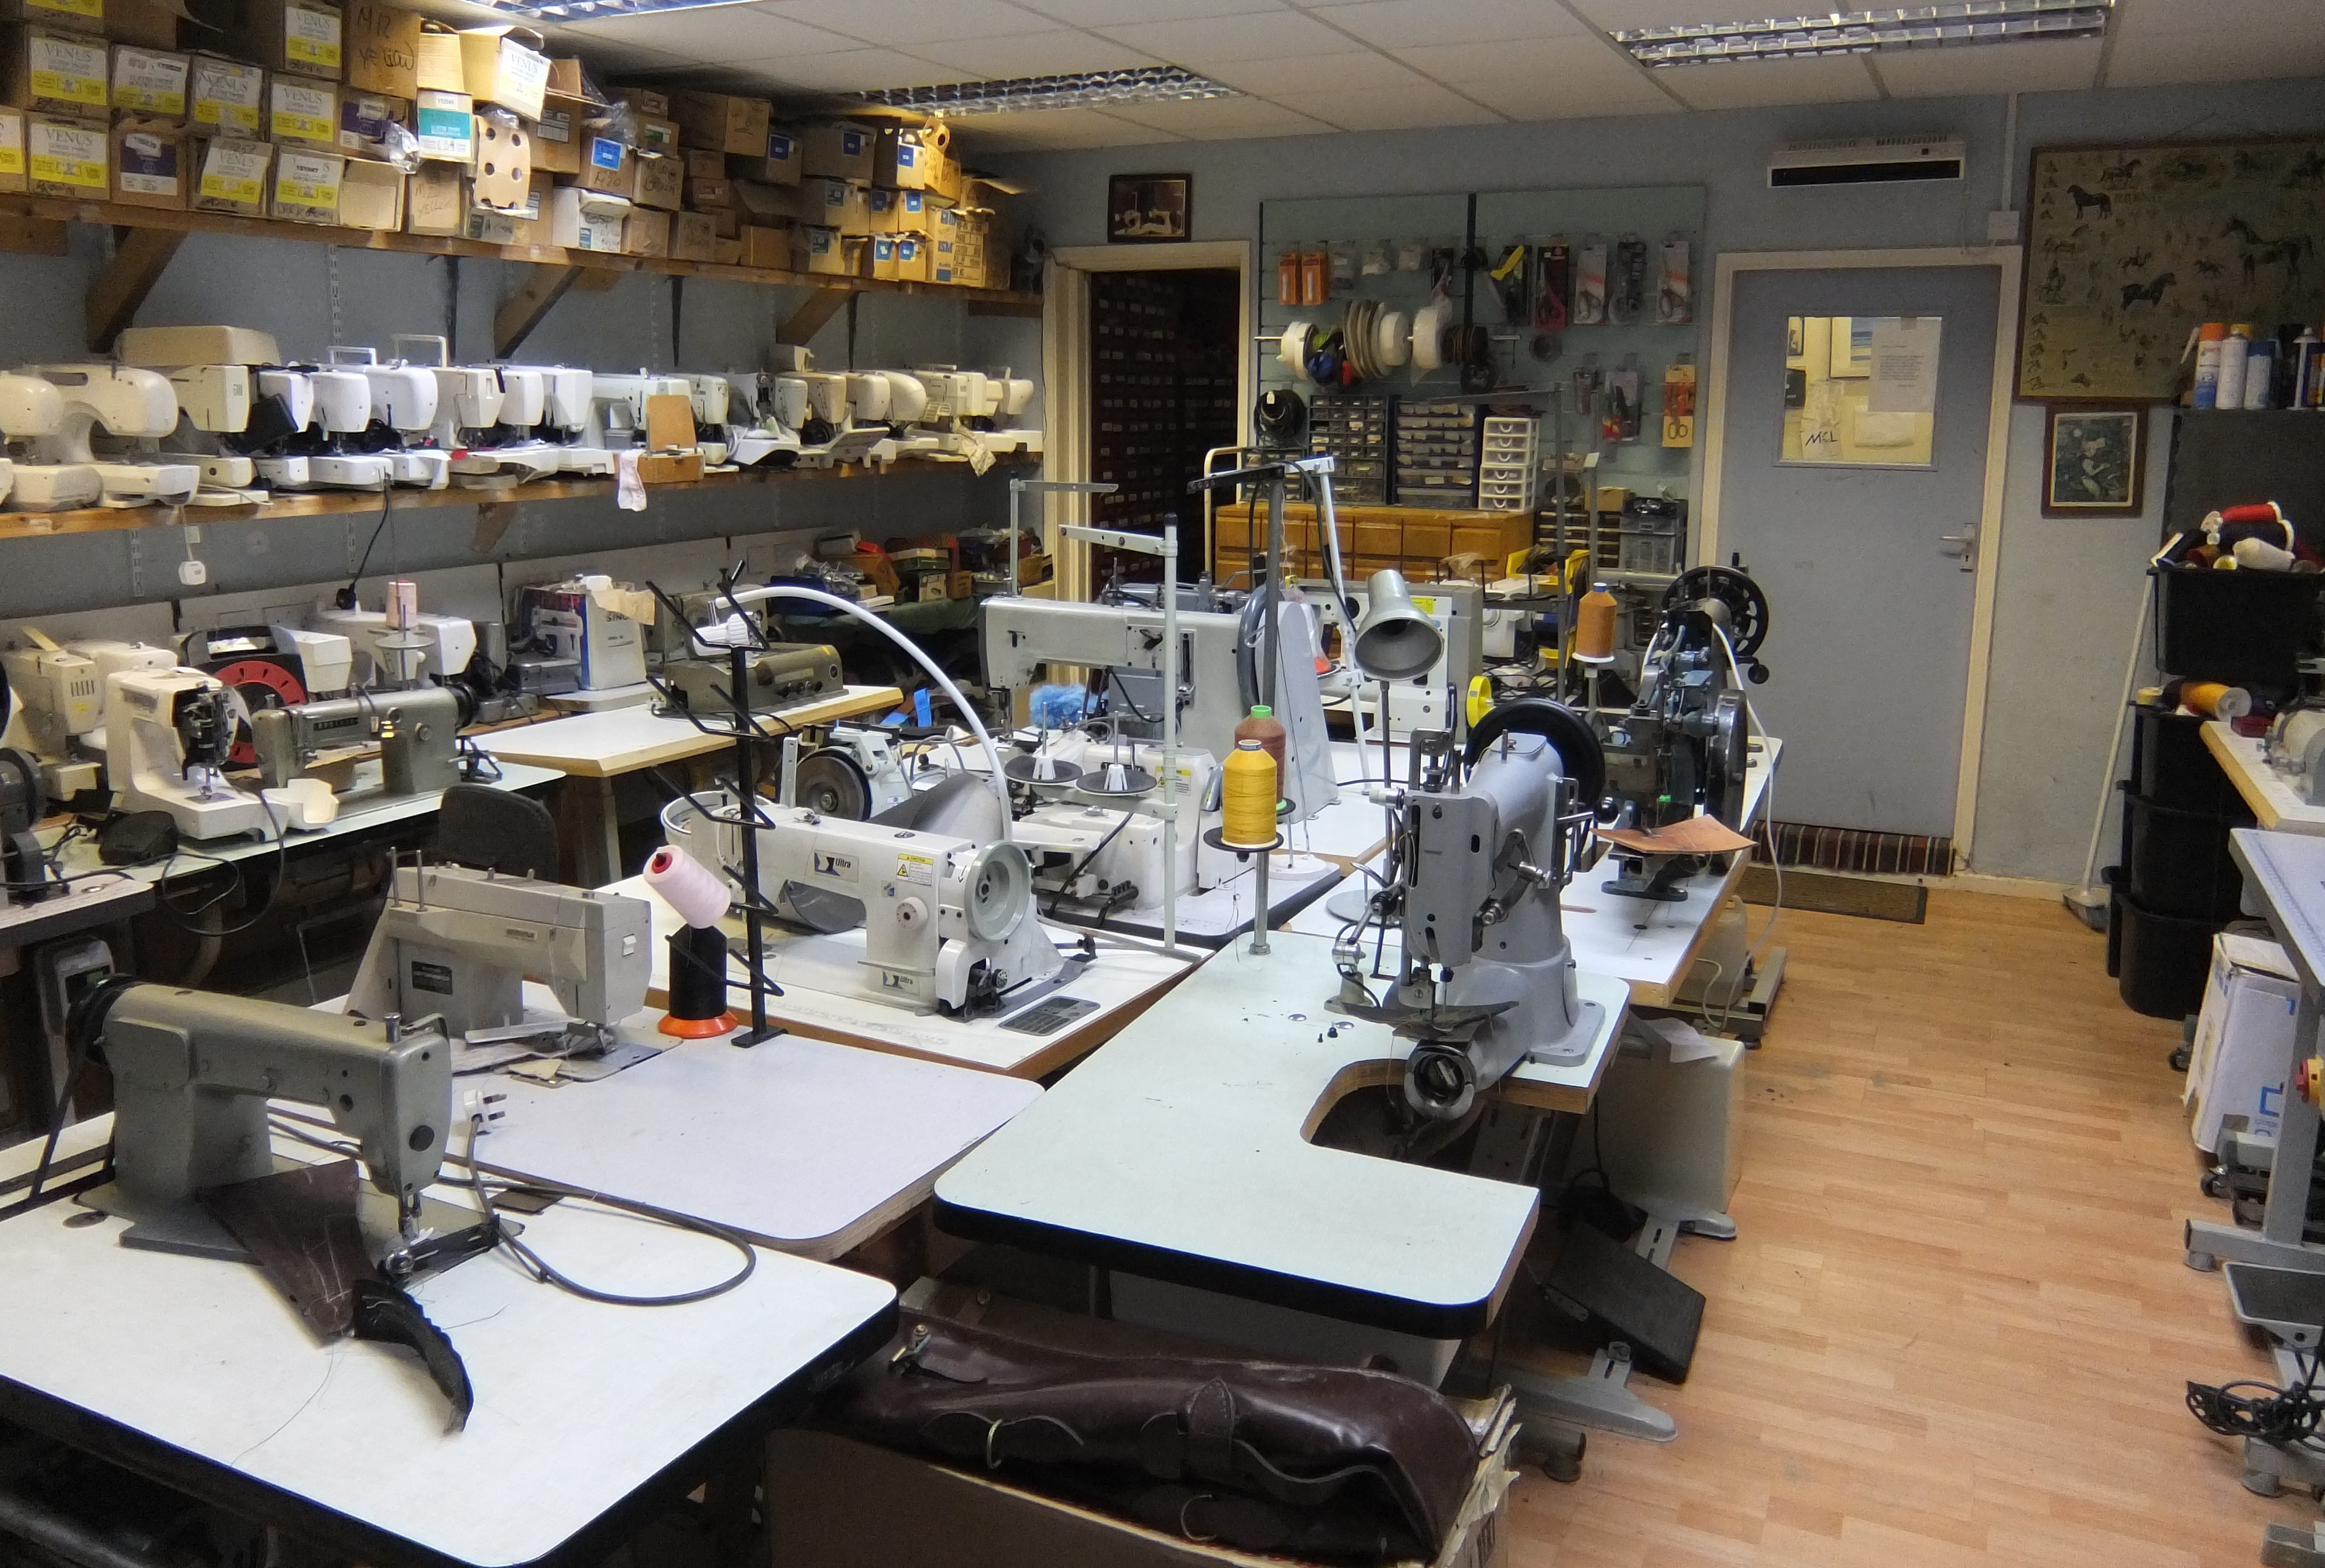 Walsall sewing machine repair